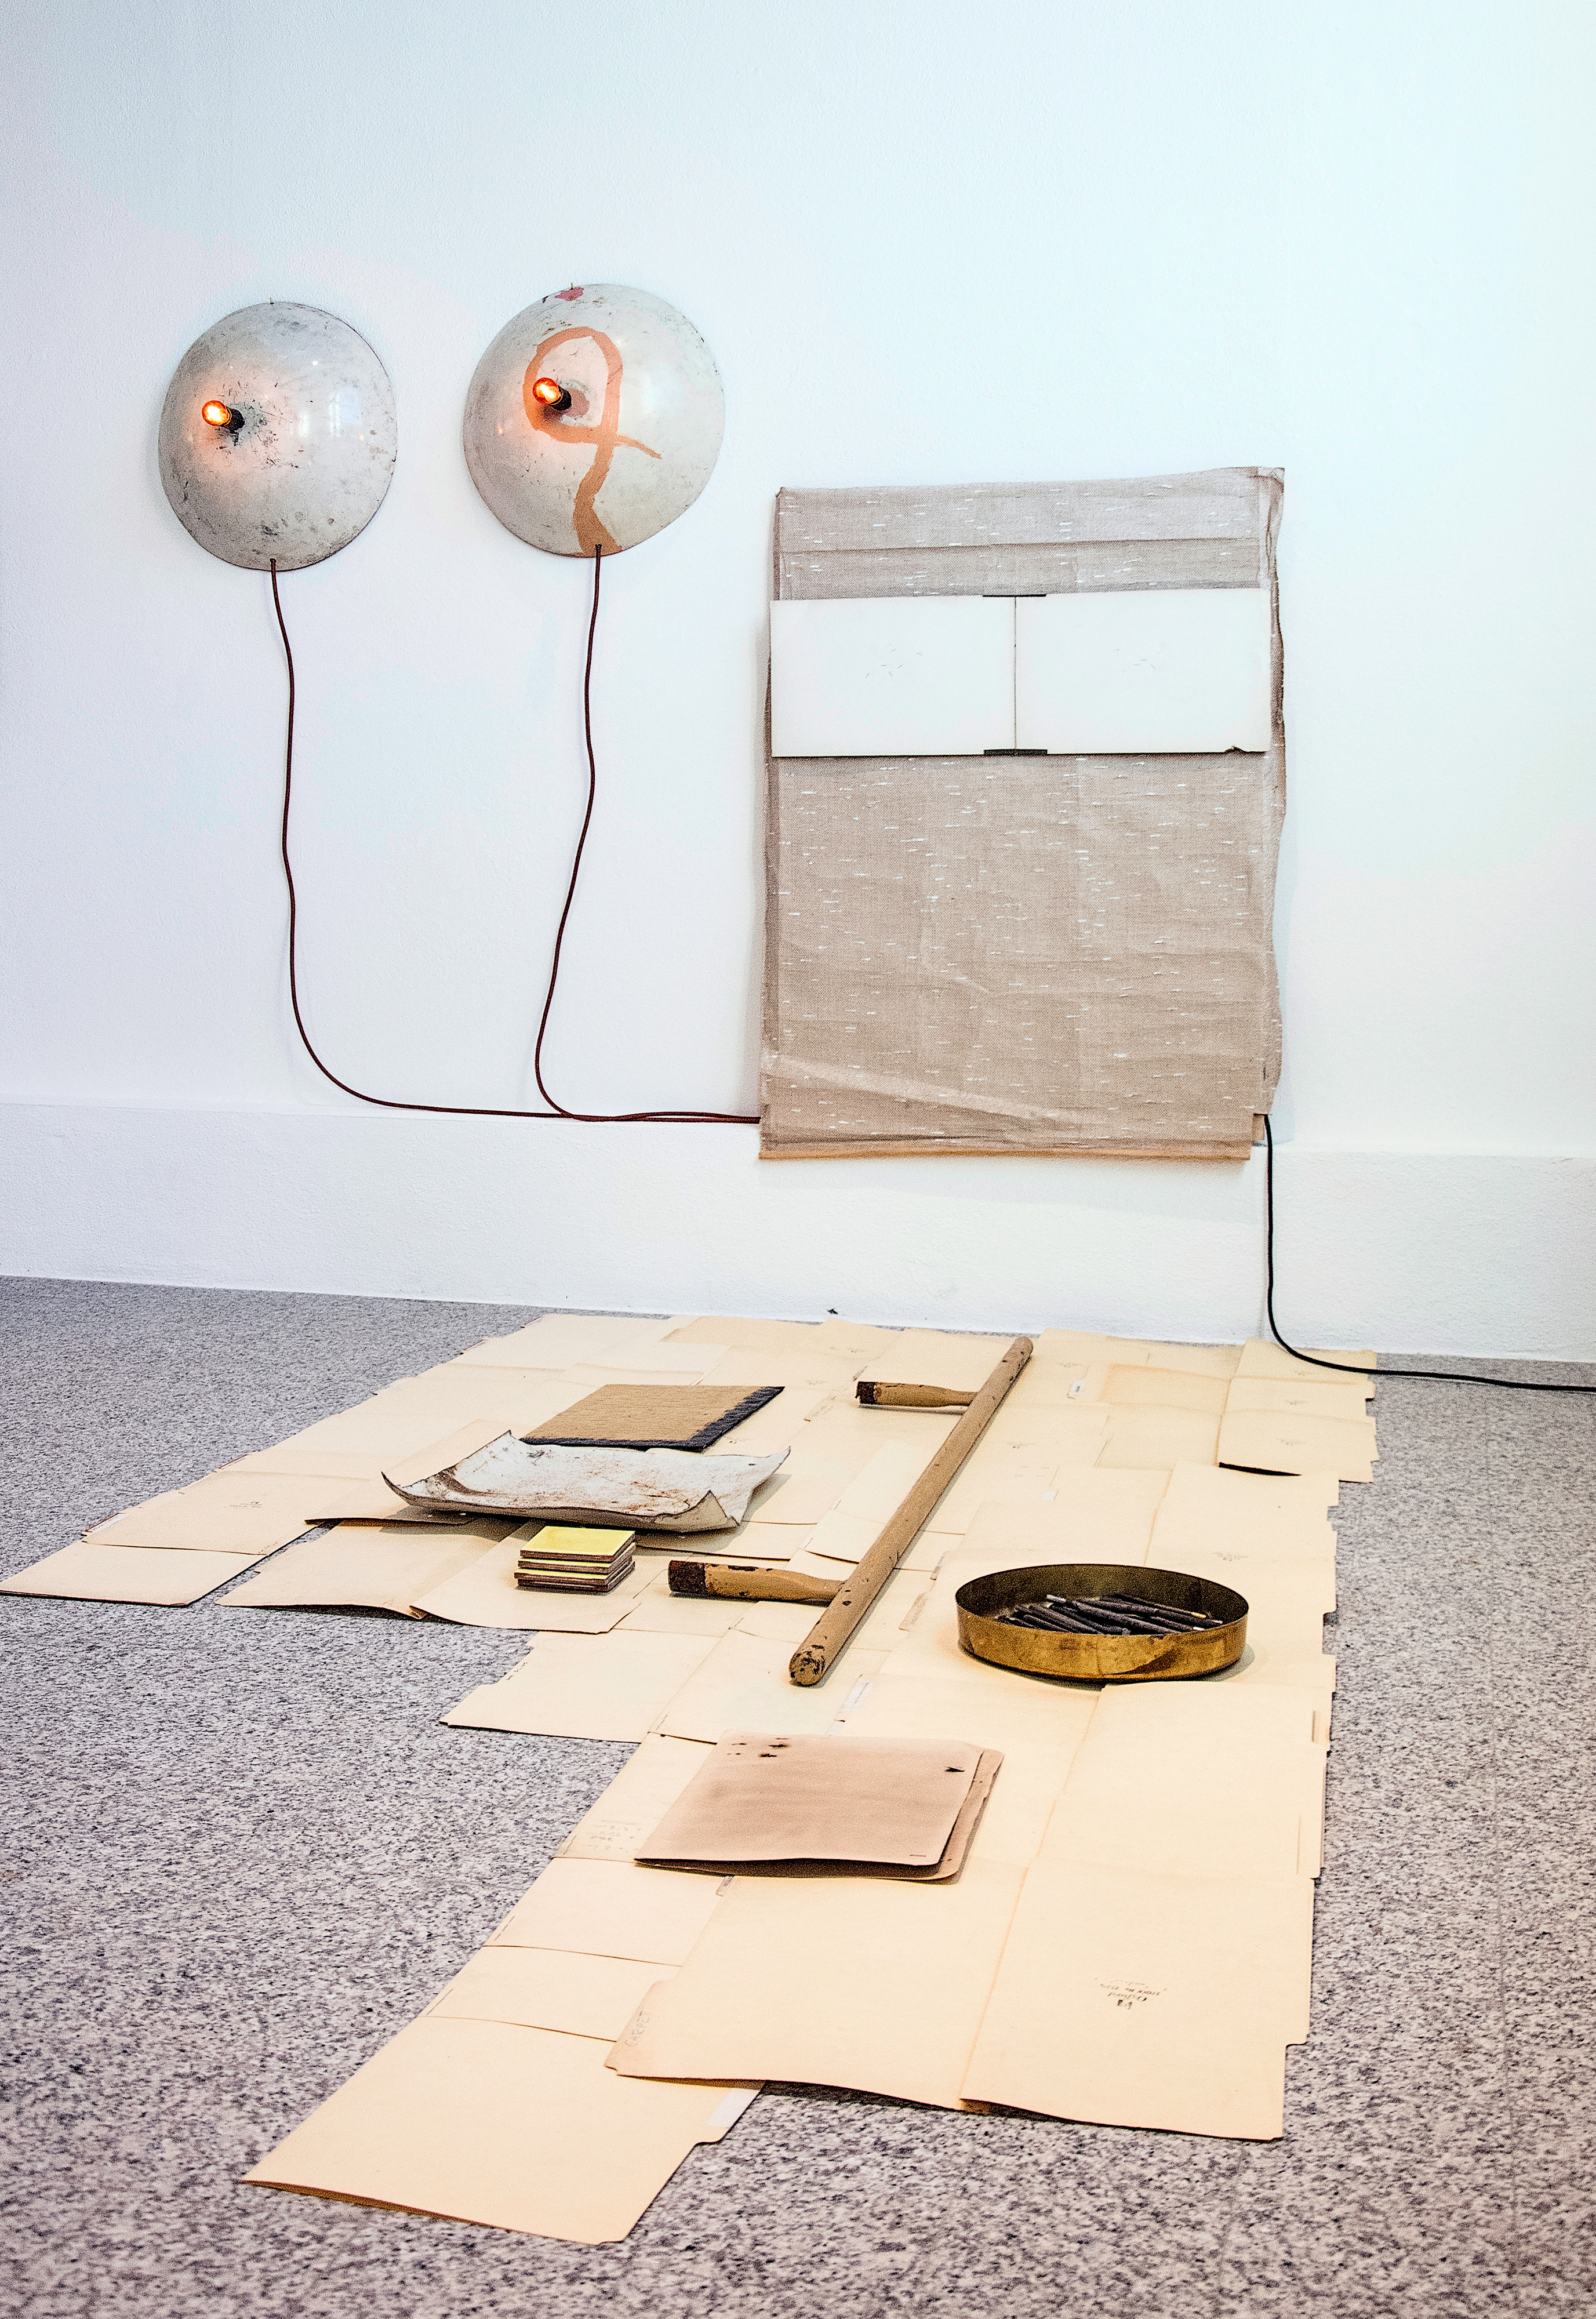 Galerie Barbara Thumm \ Sarah Entwistle – You should remember to do those things done before that have to be done again